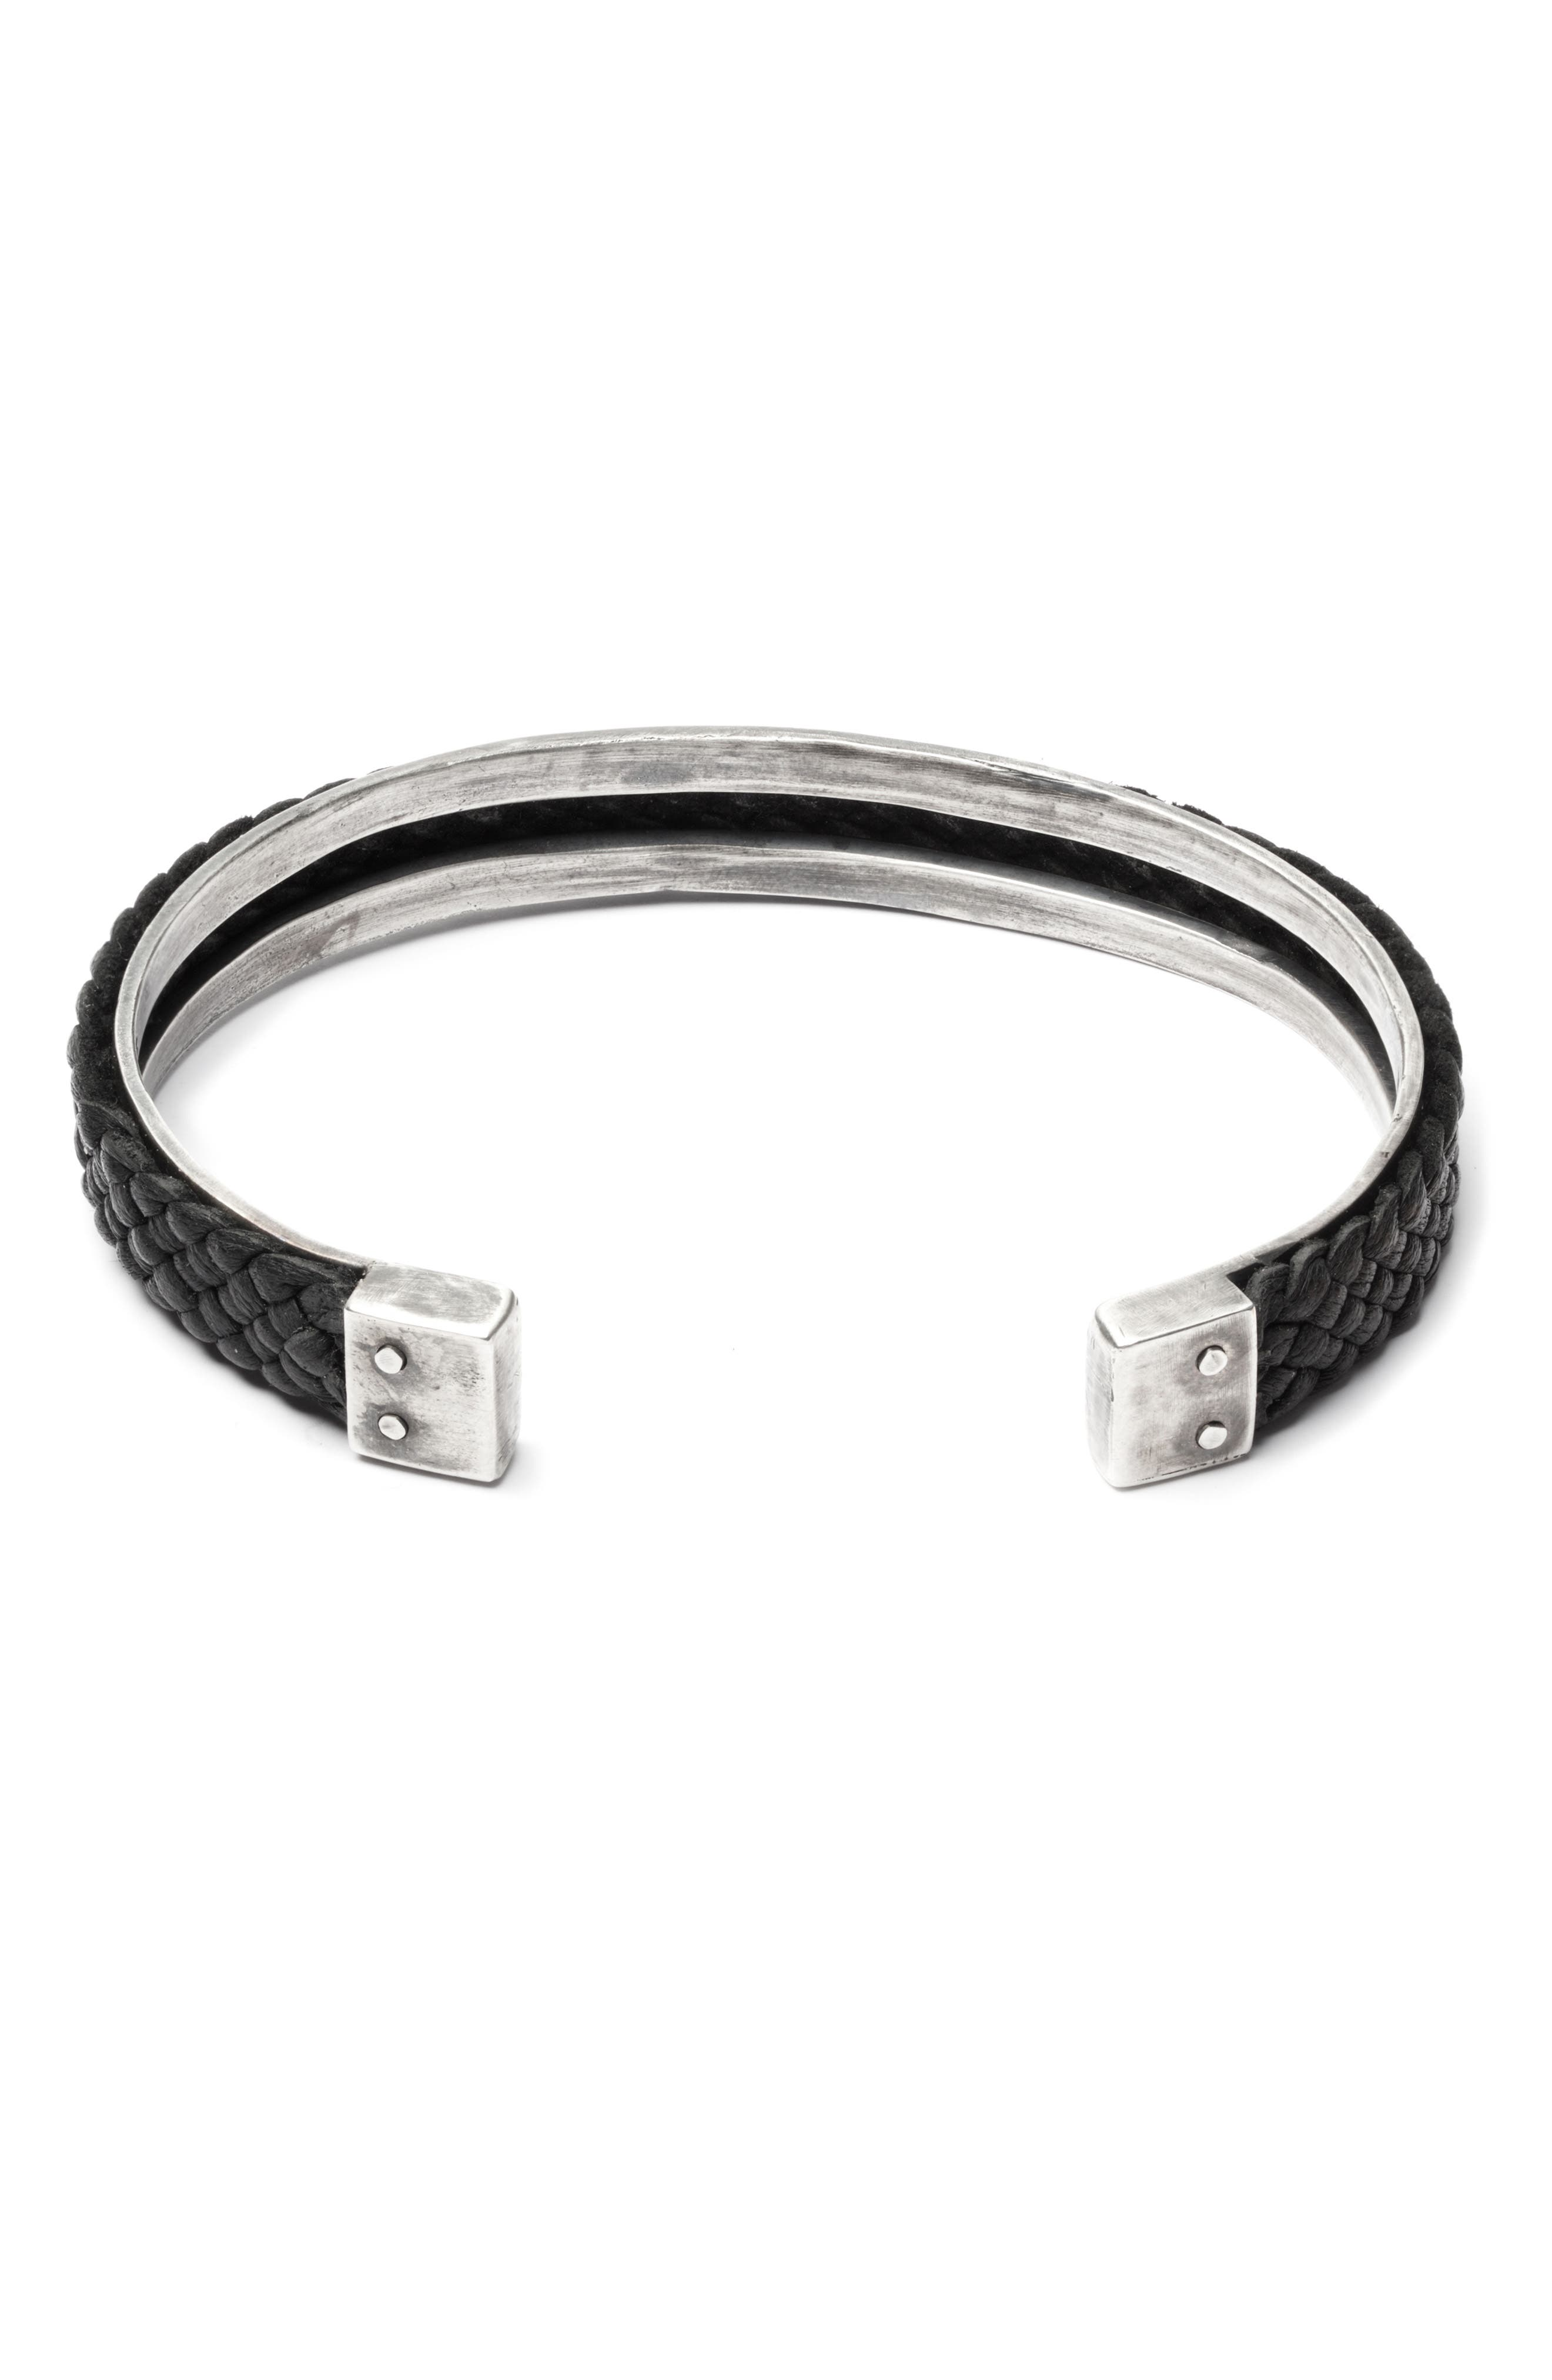 TITLE OF WORK Braided Leather Cuff Bracelet in Black/Silver